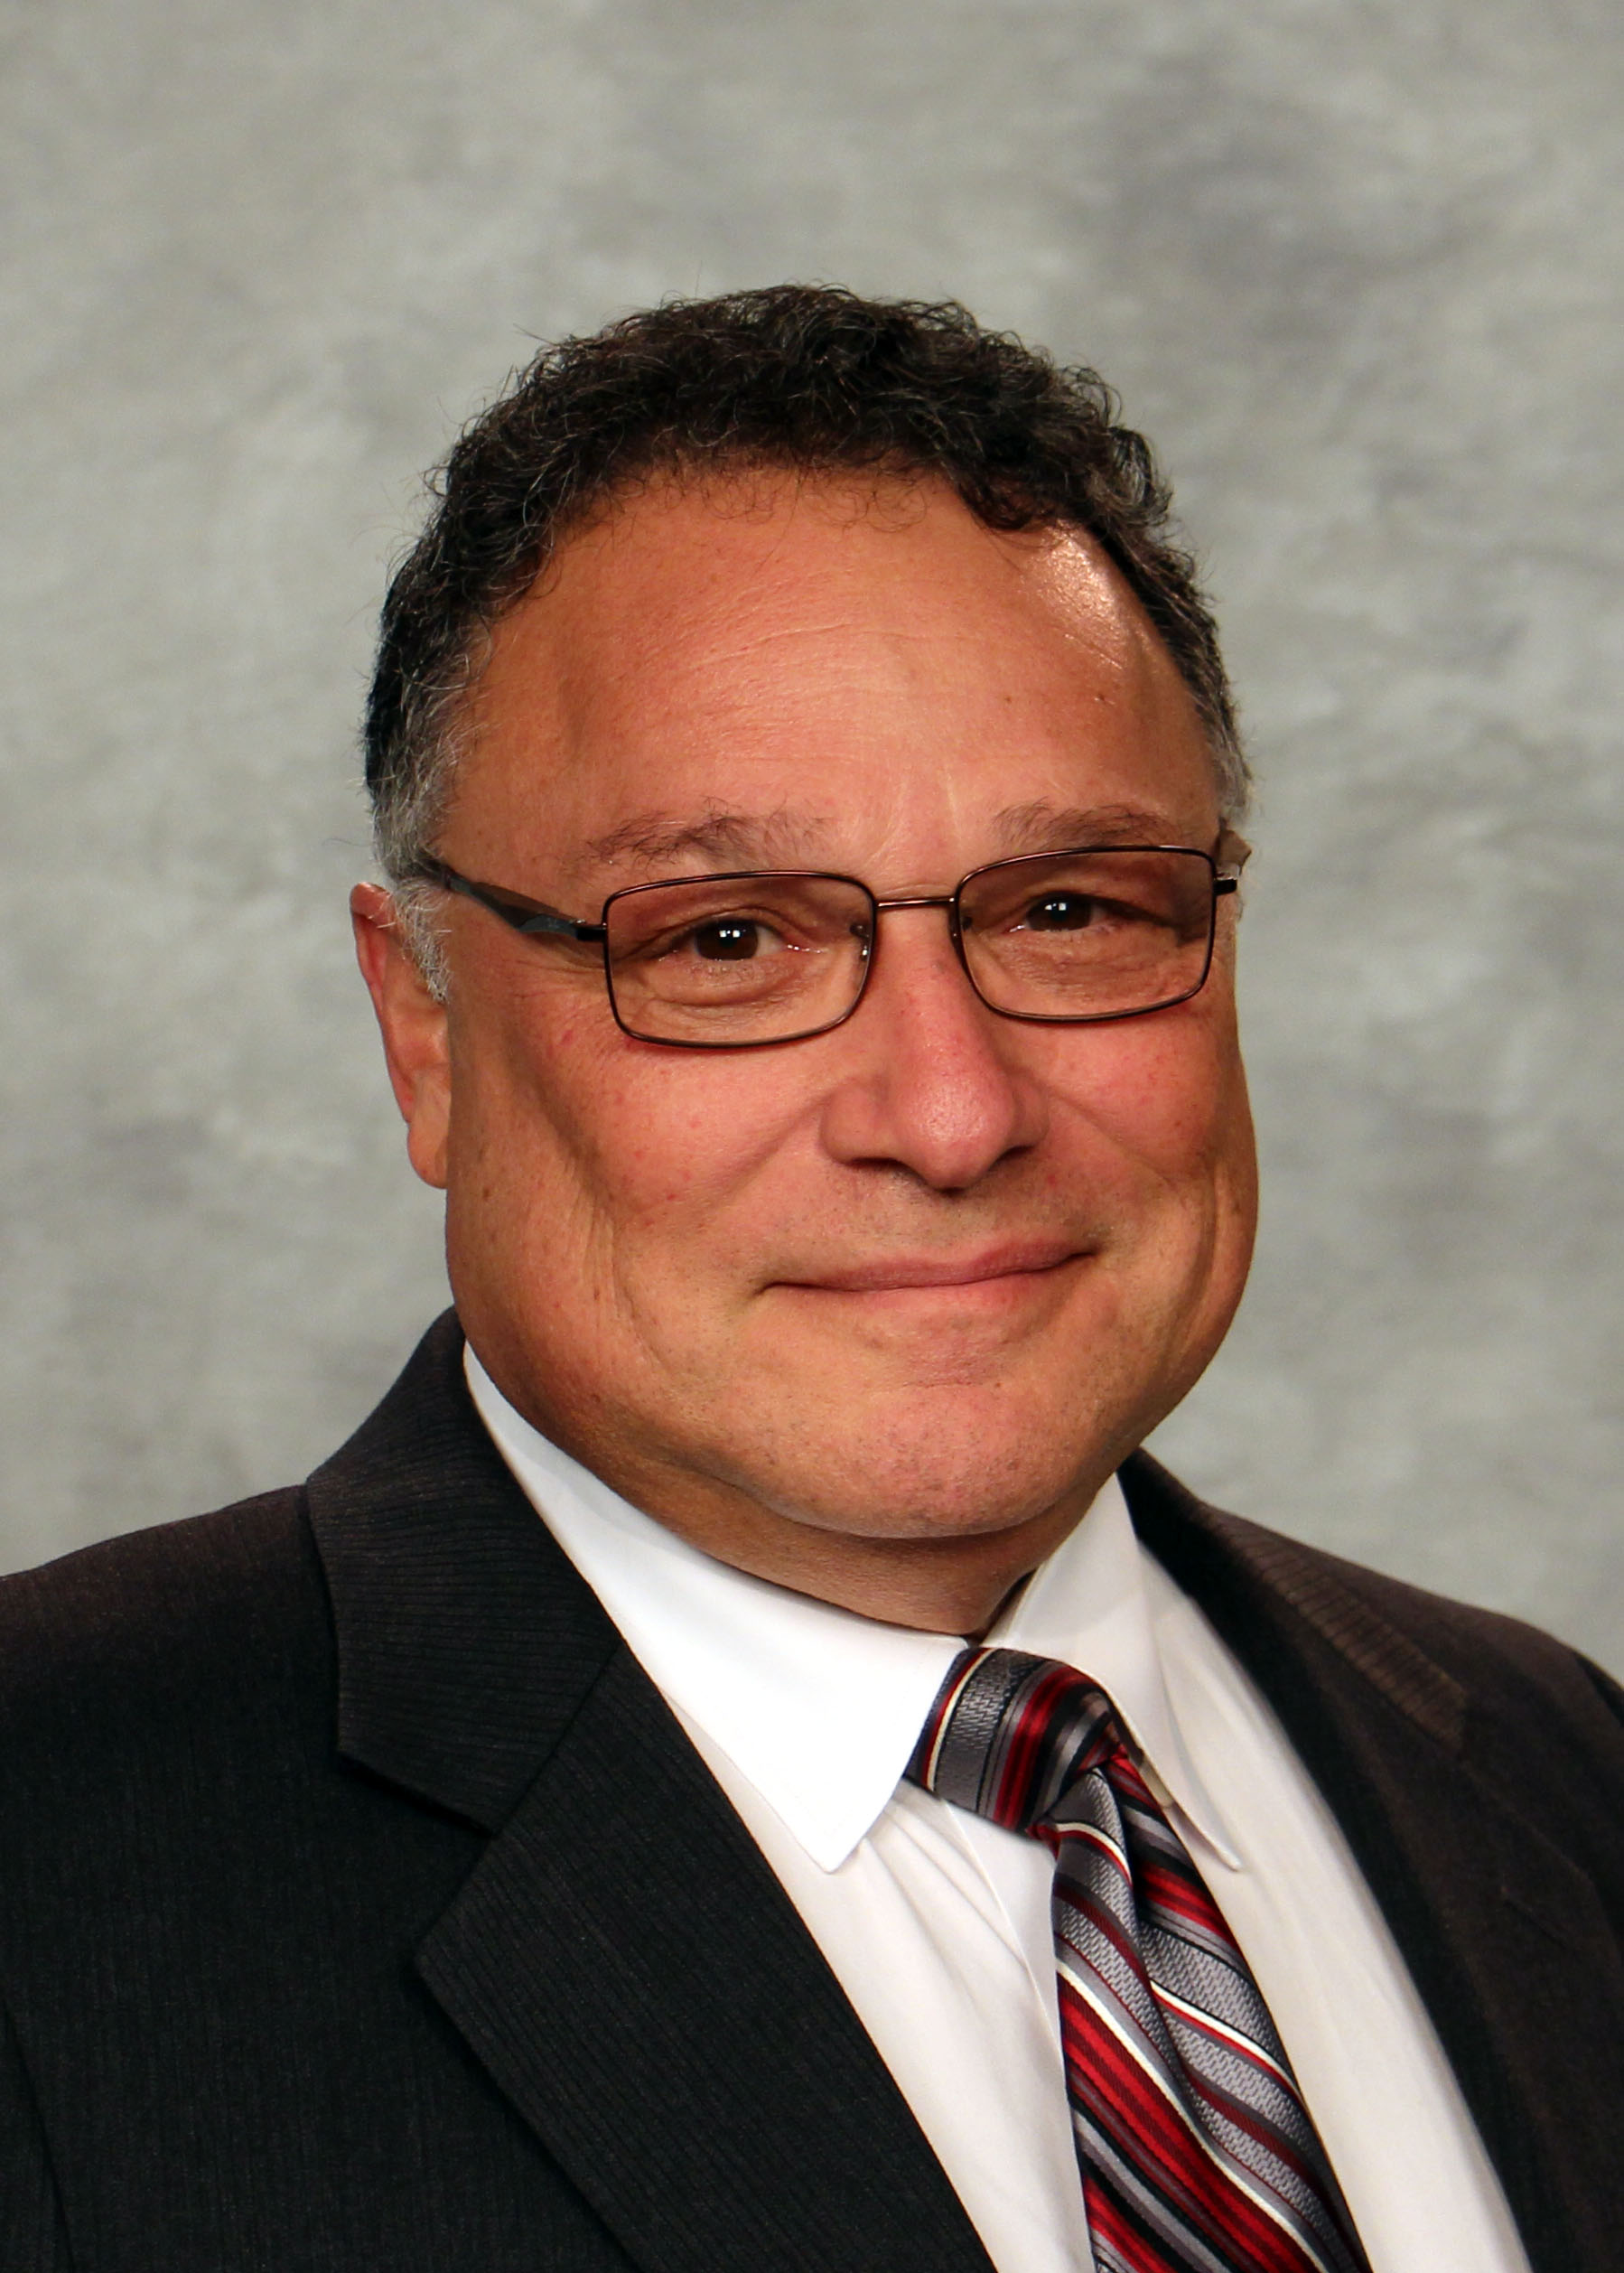 Gary Delorenzo, financial advisor Bridgeport CT